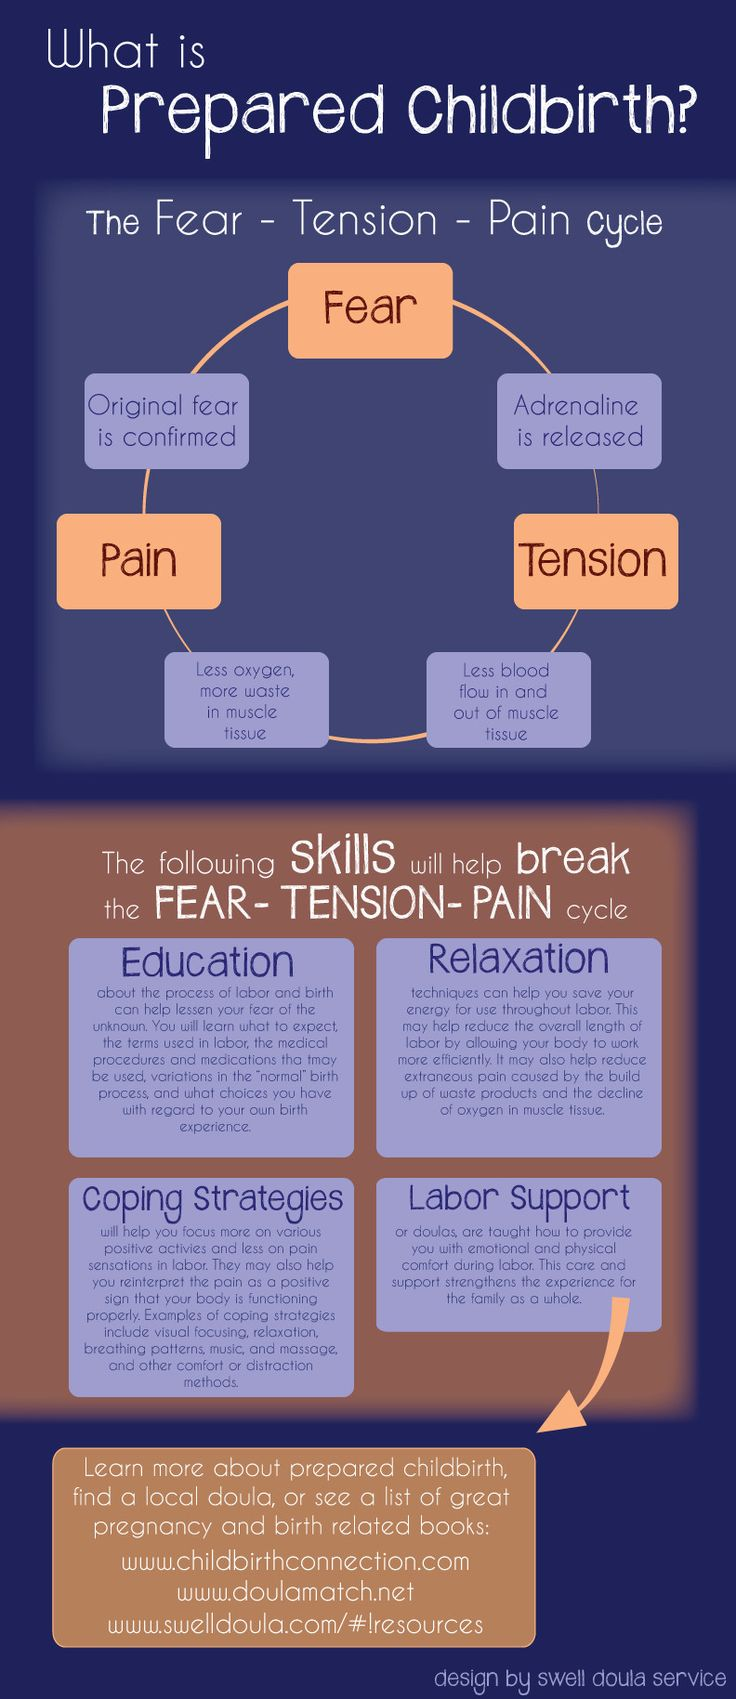 Prepared Childbirth: The Fear-Tension-Pain Cycle